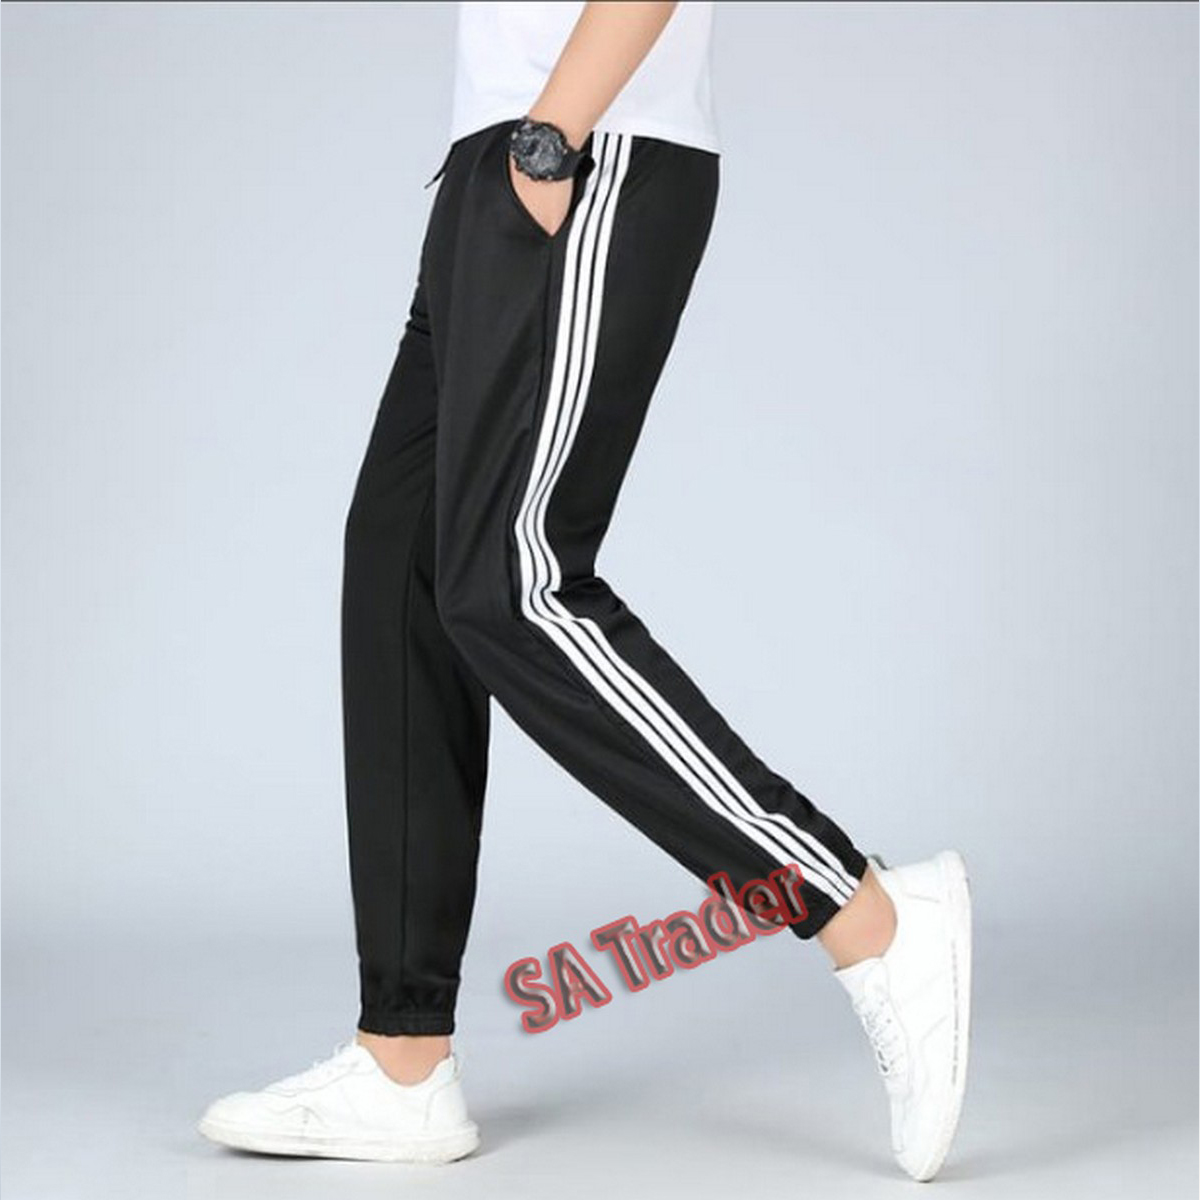 Summer Strip Black Trouser for Man and Women Gym ,Running Casual Wear In Quality Fabric